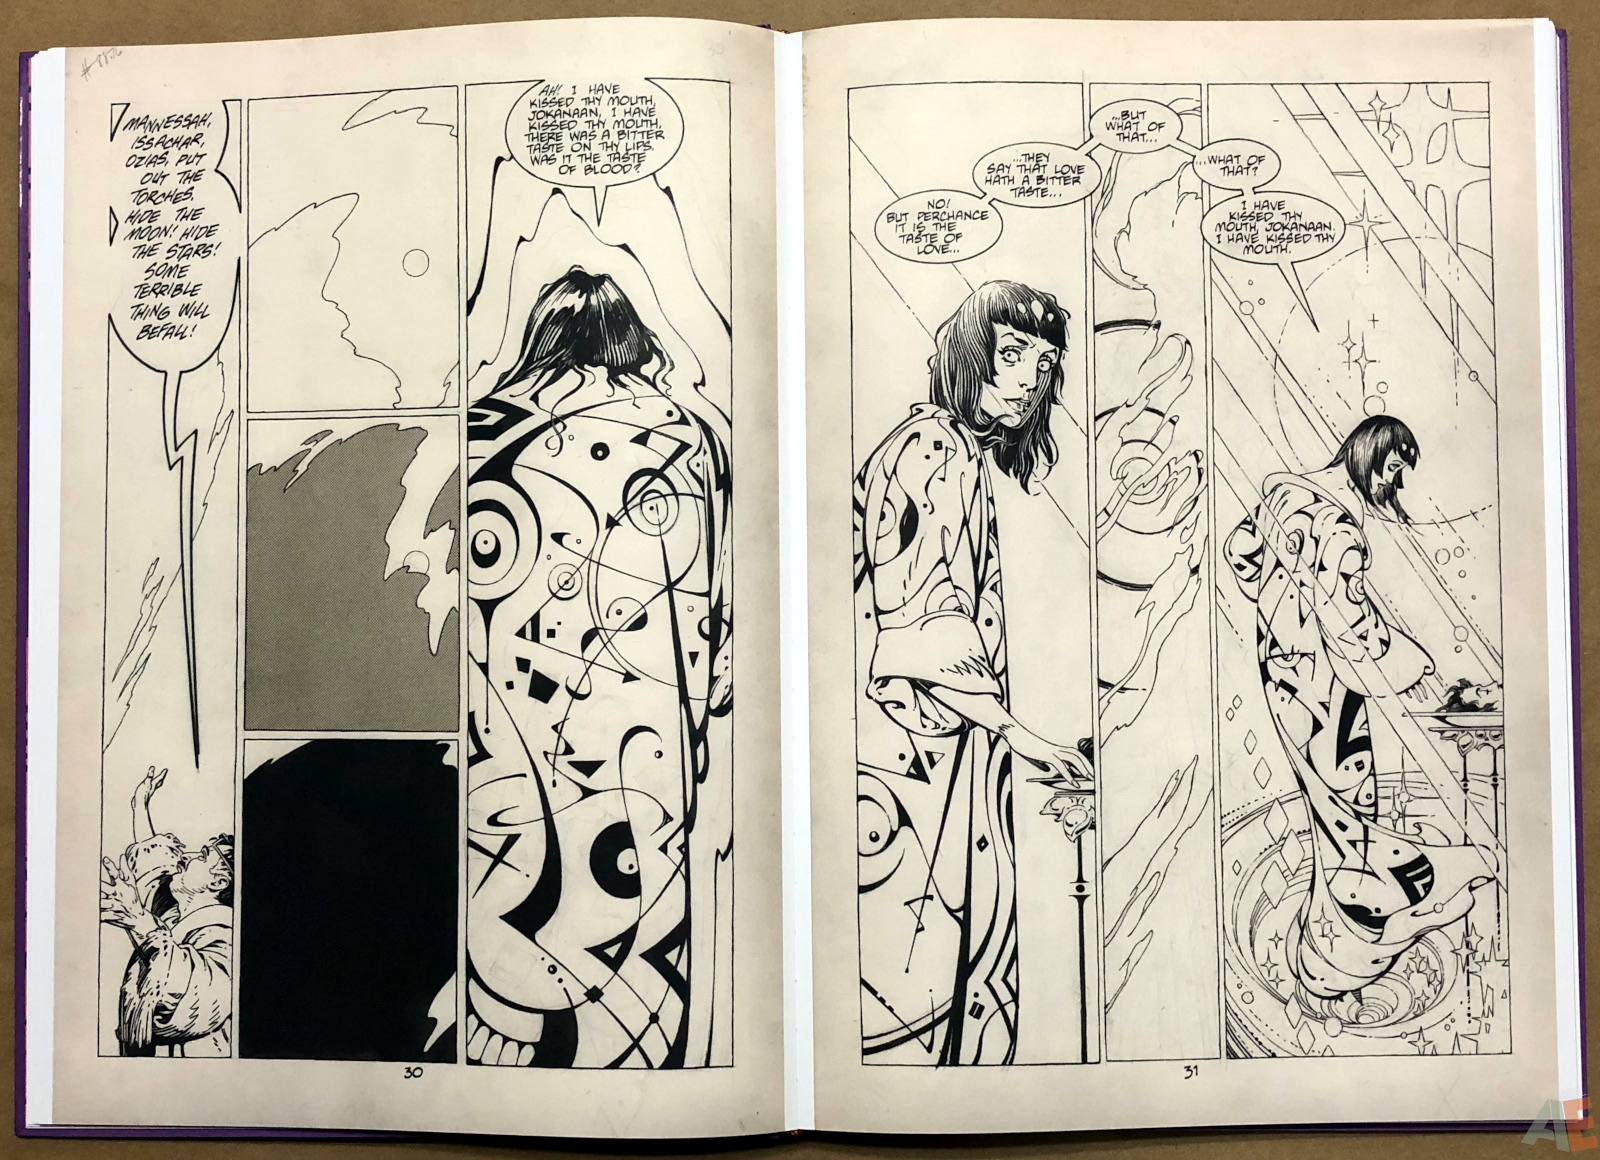 P. Craig Russell's Salome and Other Stories Fine Art Edition 14